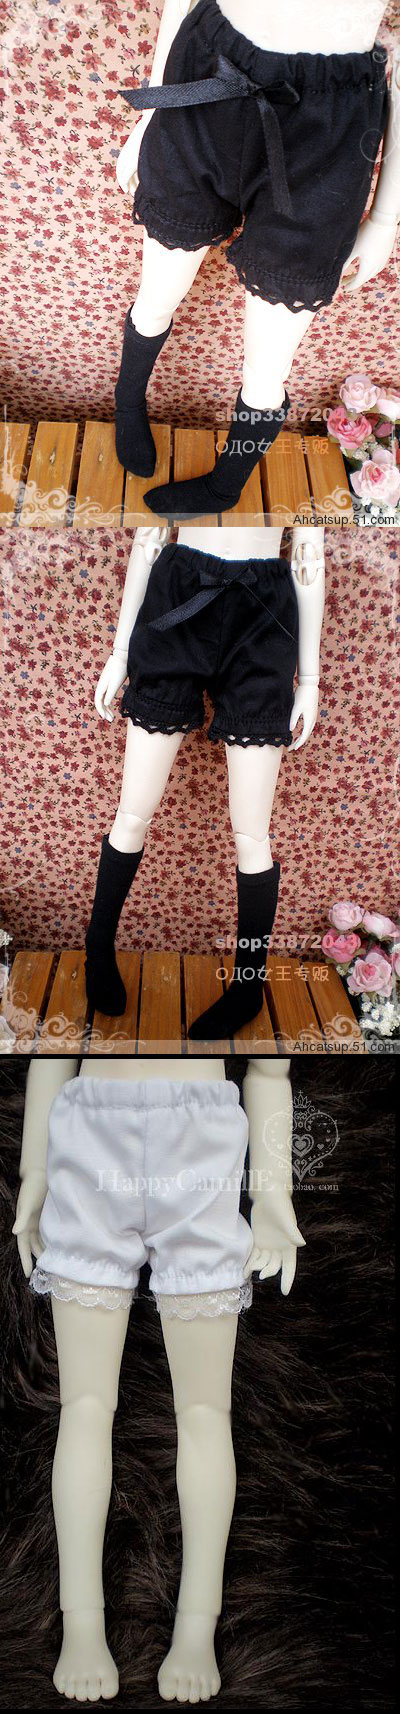 BJD Clothes Short Pants SD/MSD Ball-jointed Doll